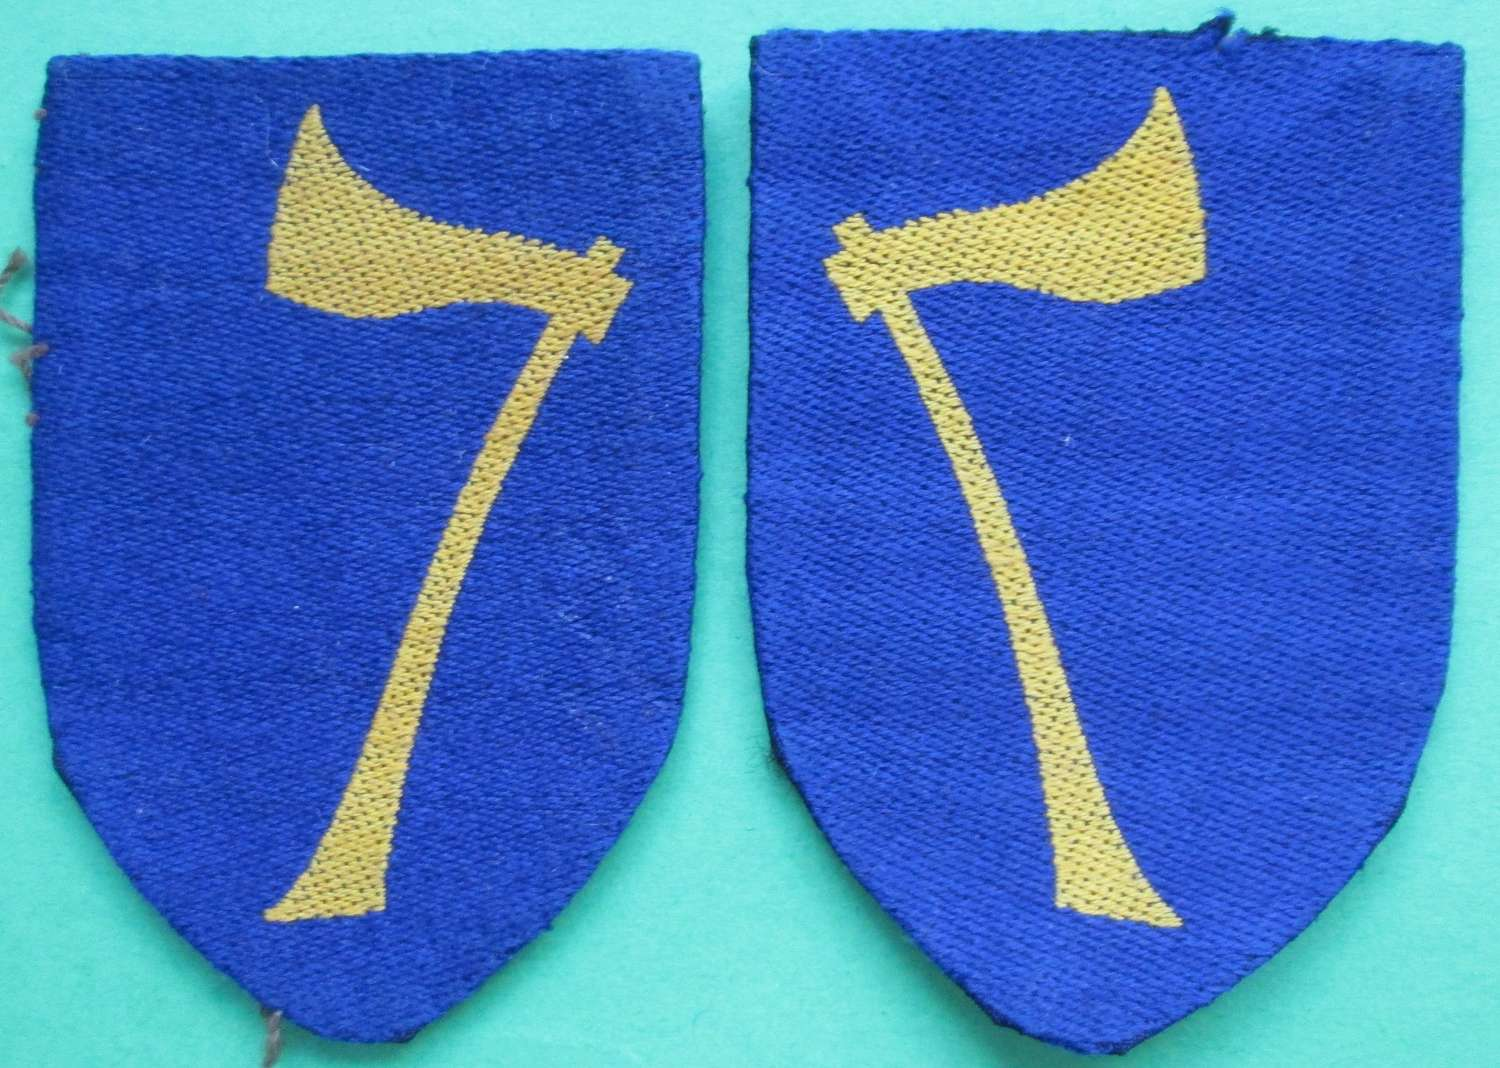 A PAIR OF NORTHERN ARMY GROUP FORMATION SIGNS